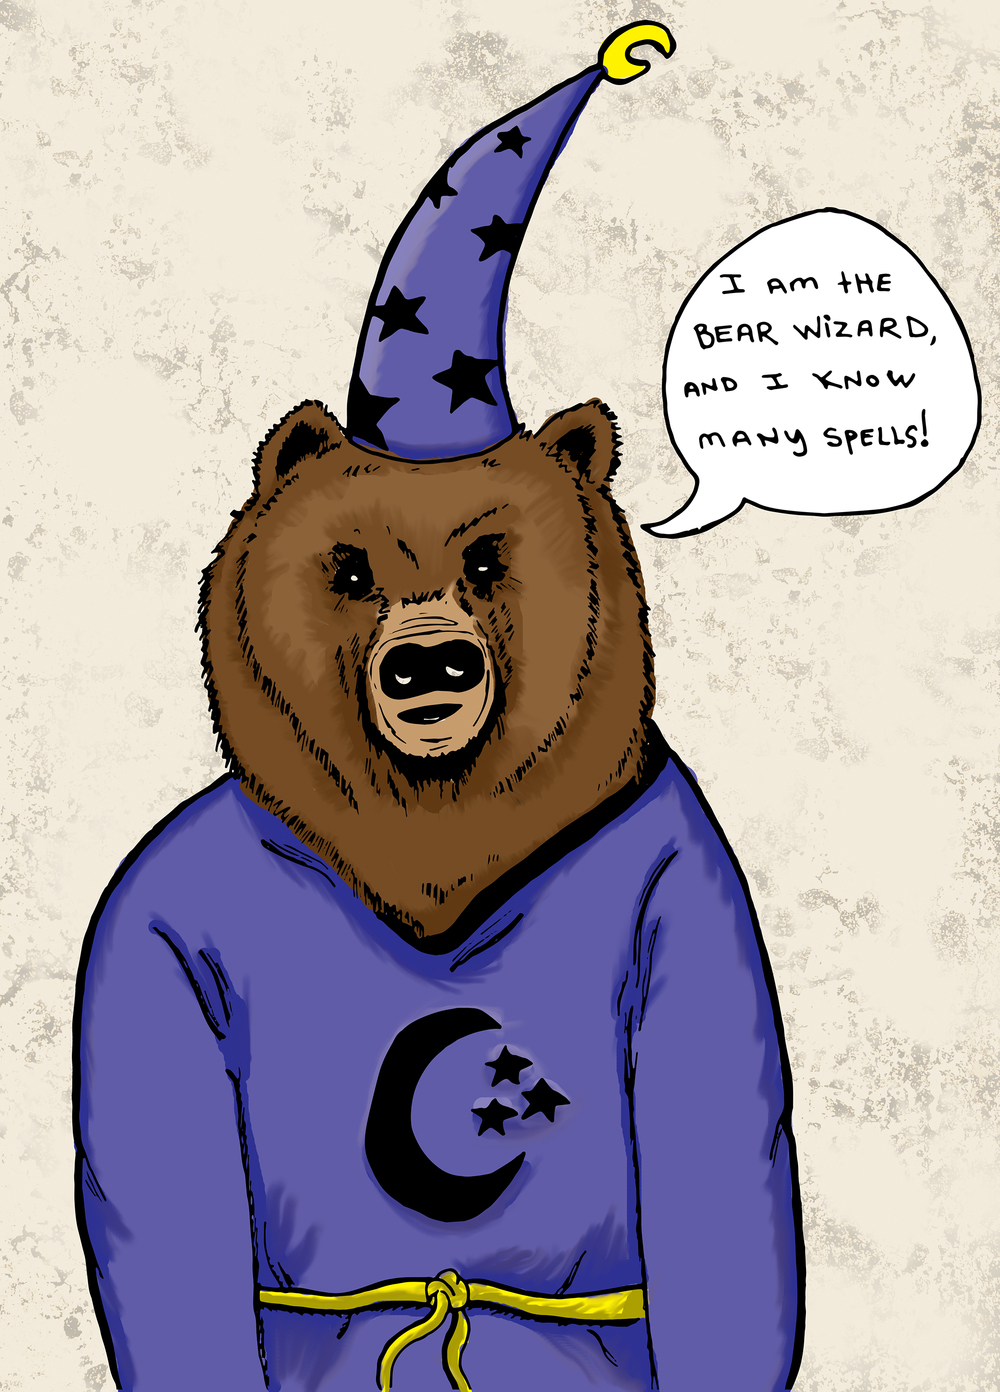 Wizard_Bear-web.jpg